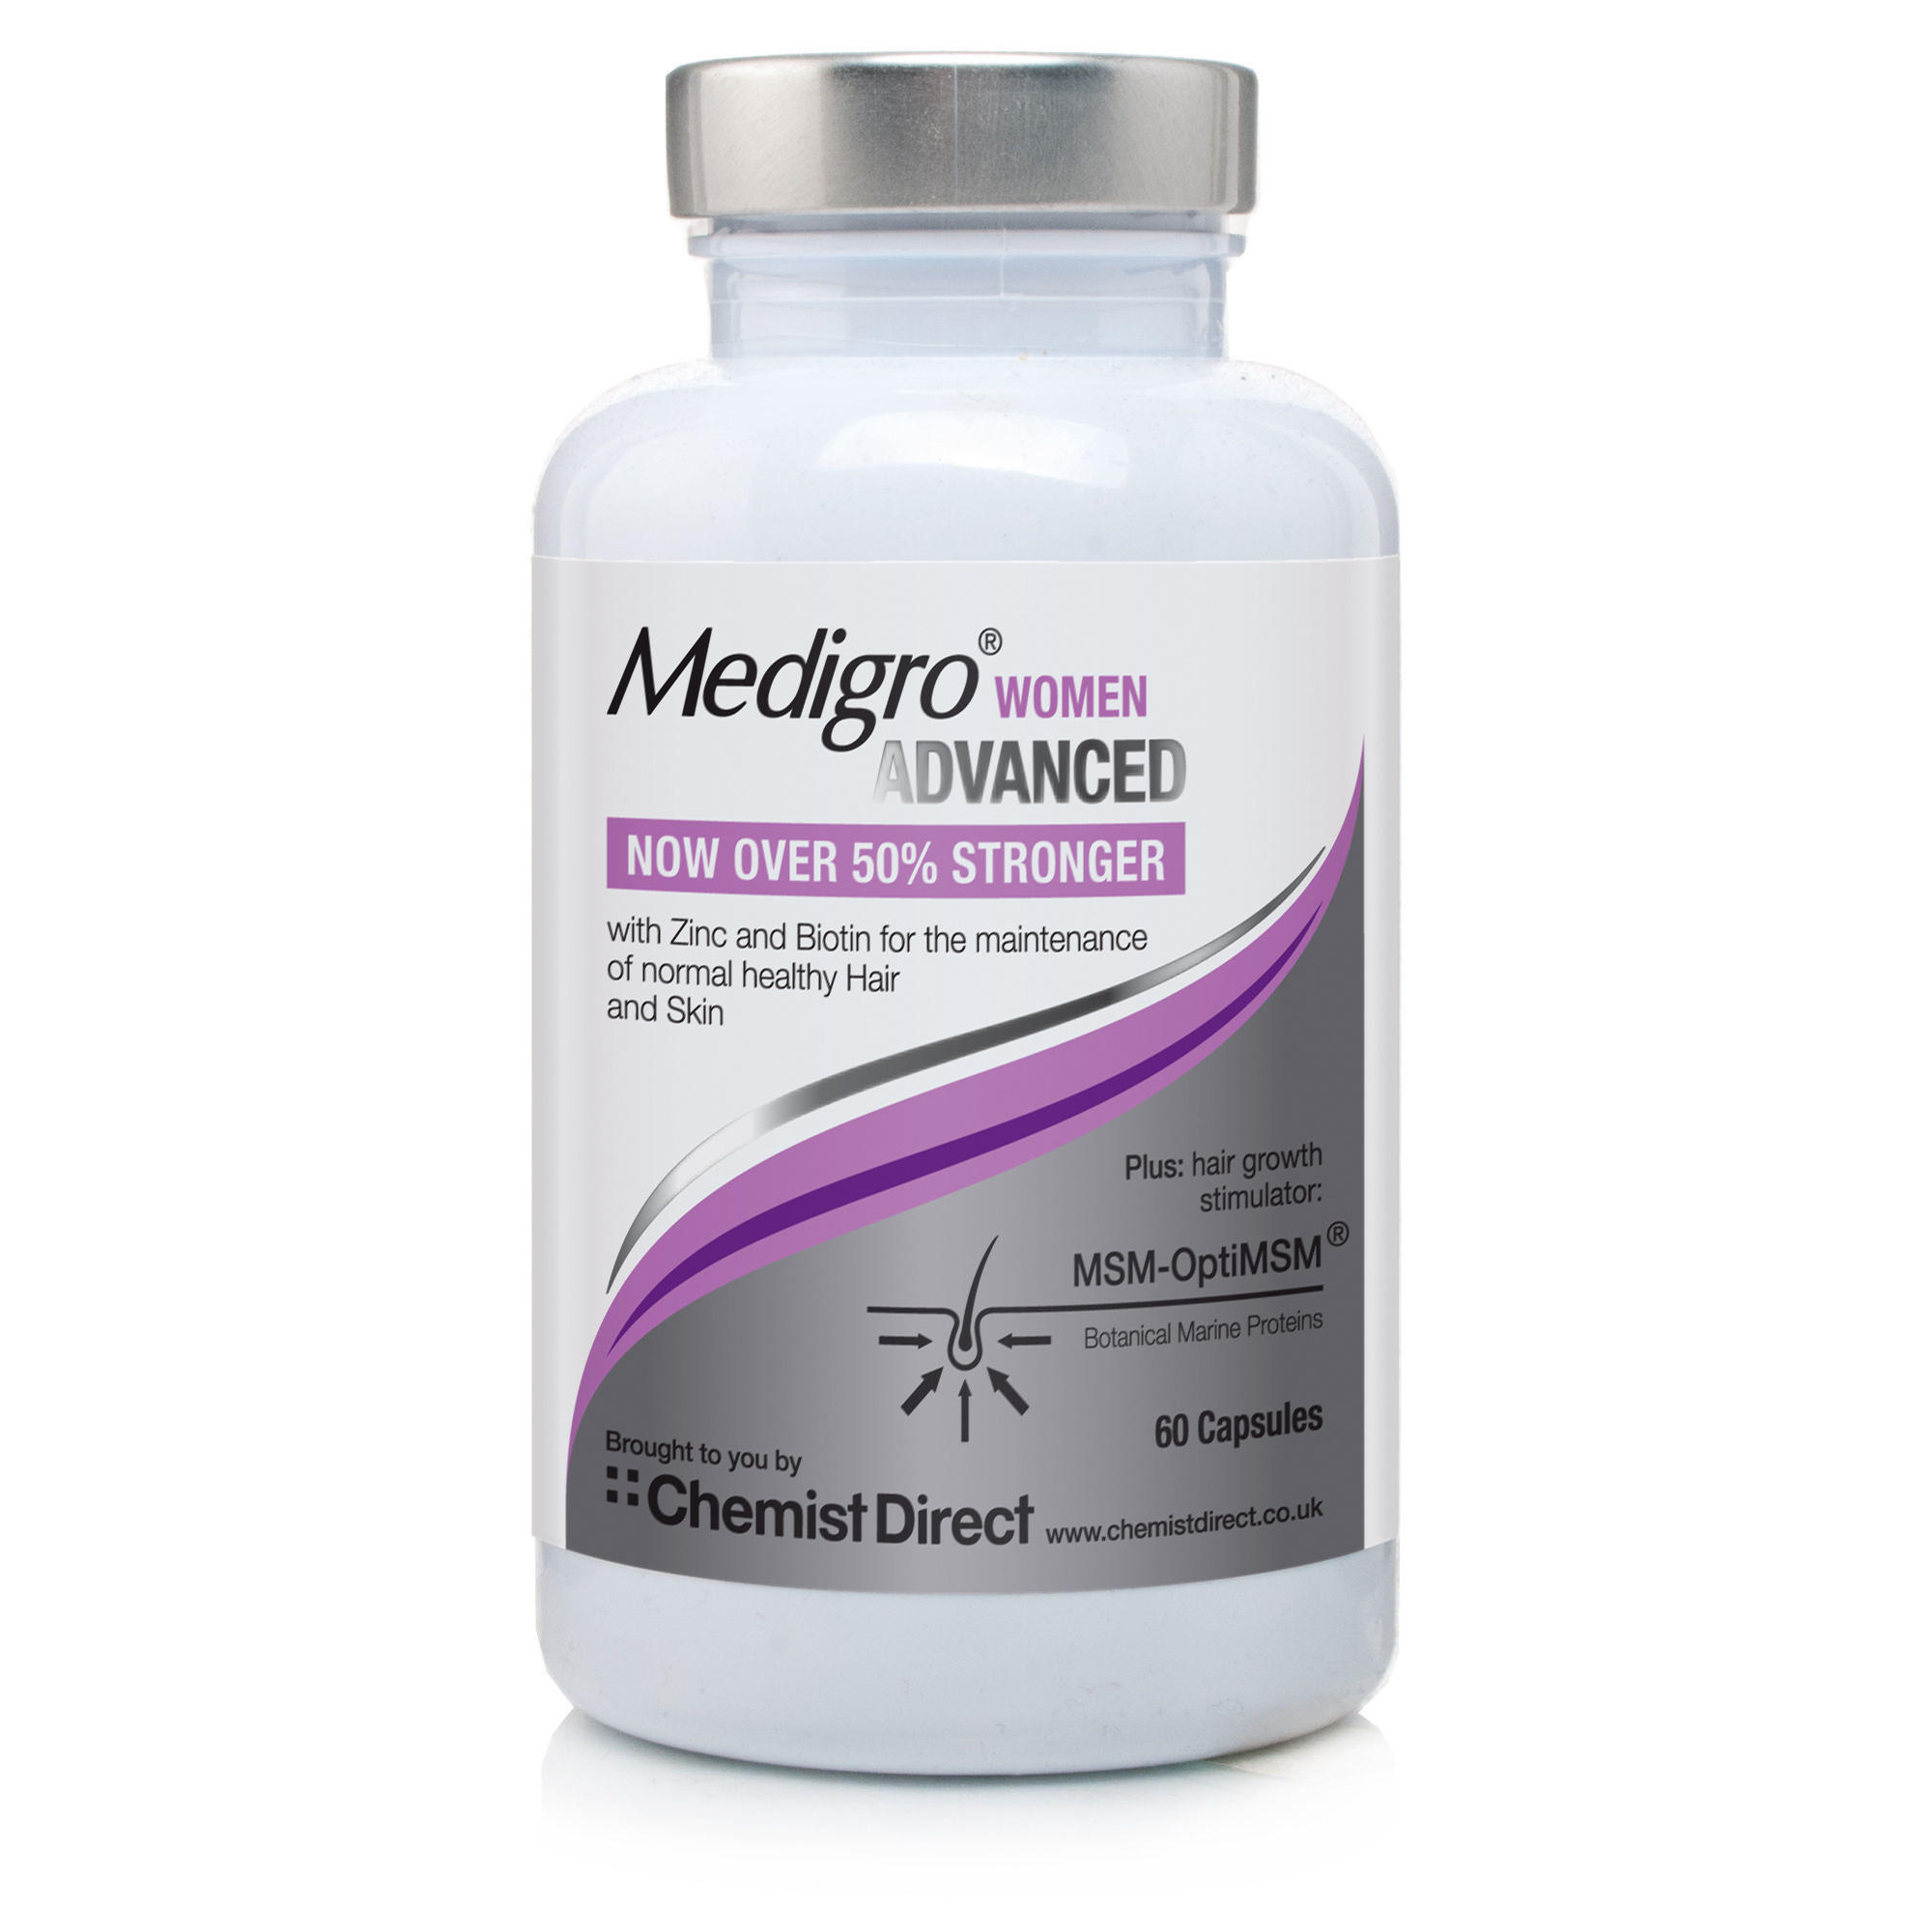 MediGro Advanced Hair Supplement Treatment for Women